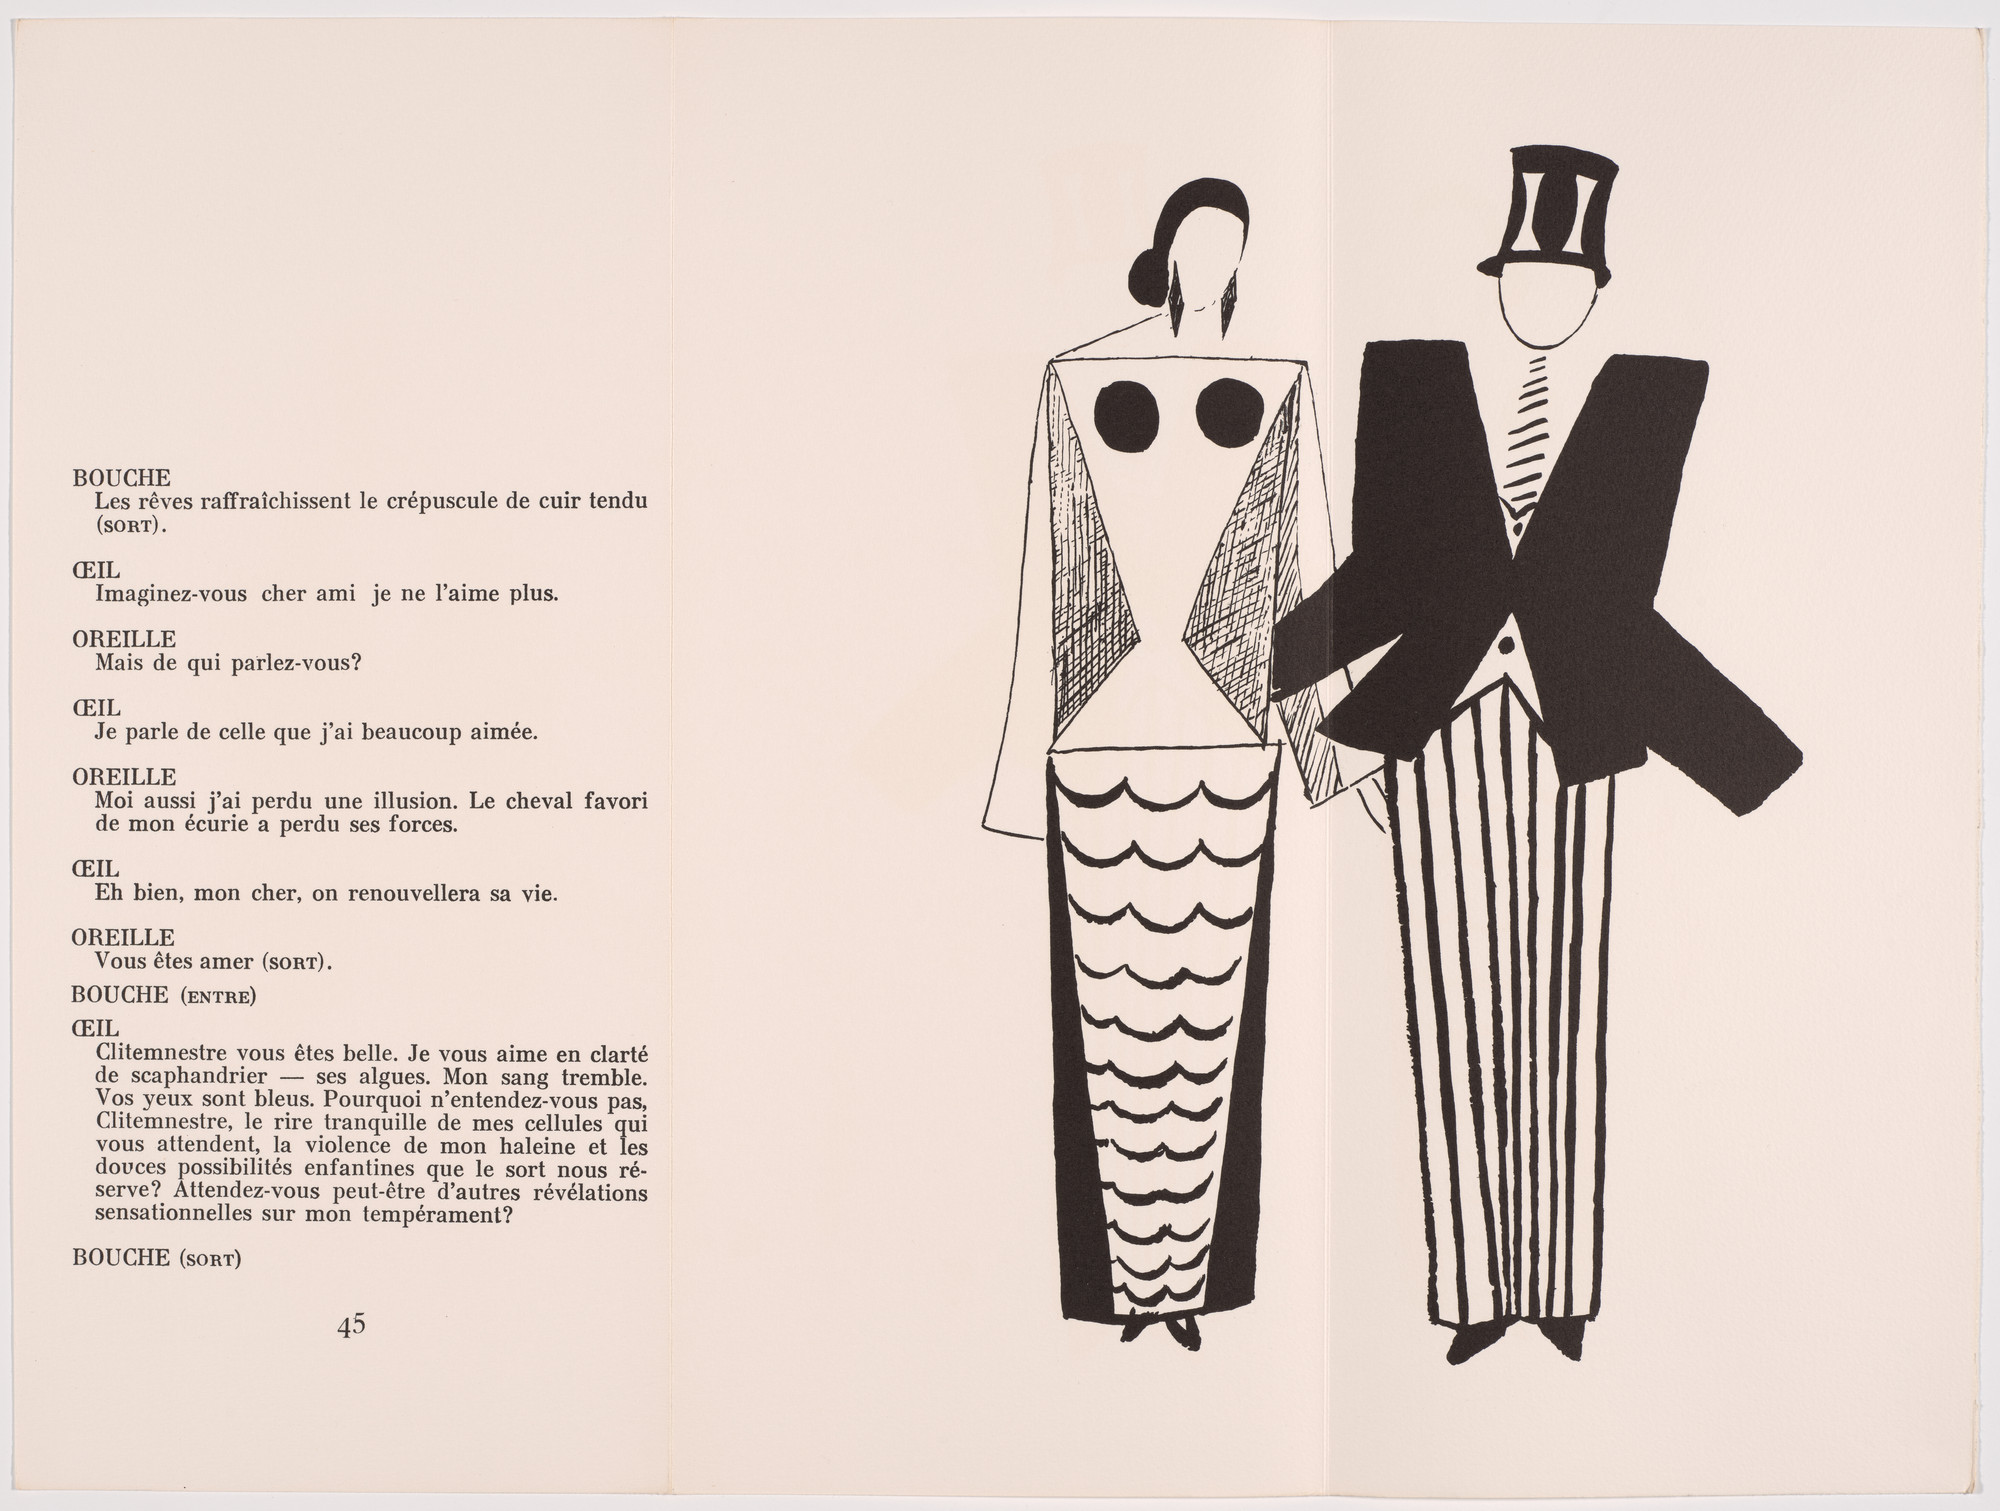 Sonia Delaunay-Terk. Double page plate (pages 46 and 47) from Le Coeur à Gaz (The Gas Heart). 1923, published 1977